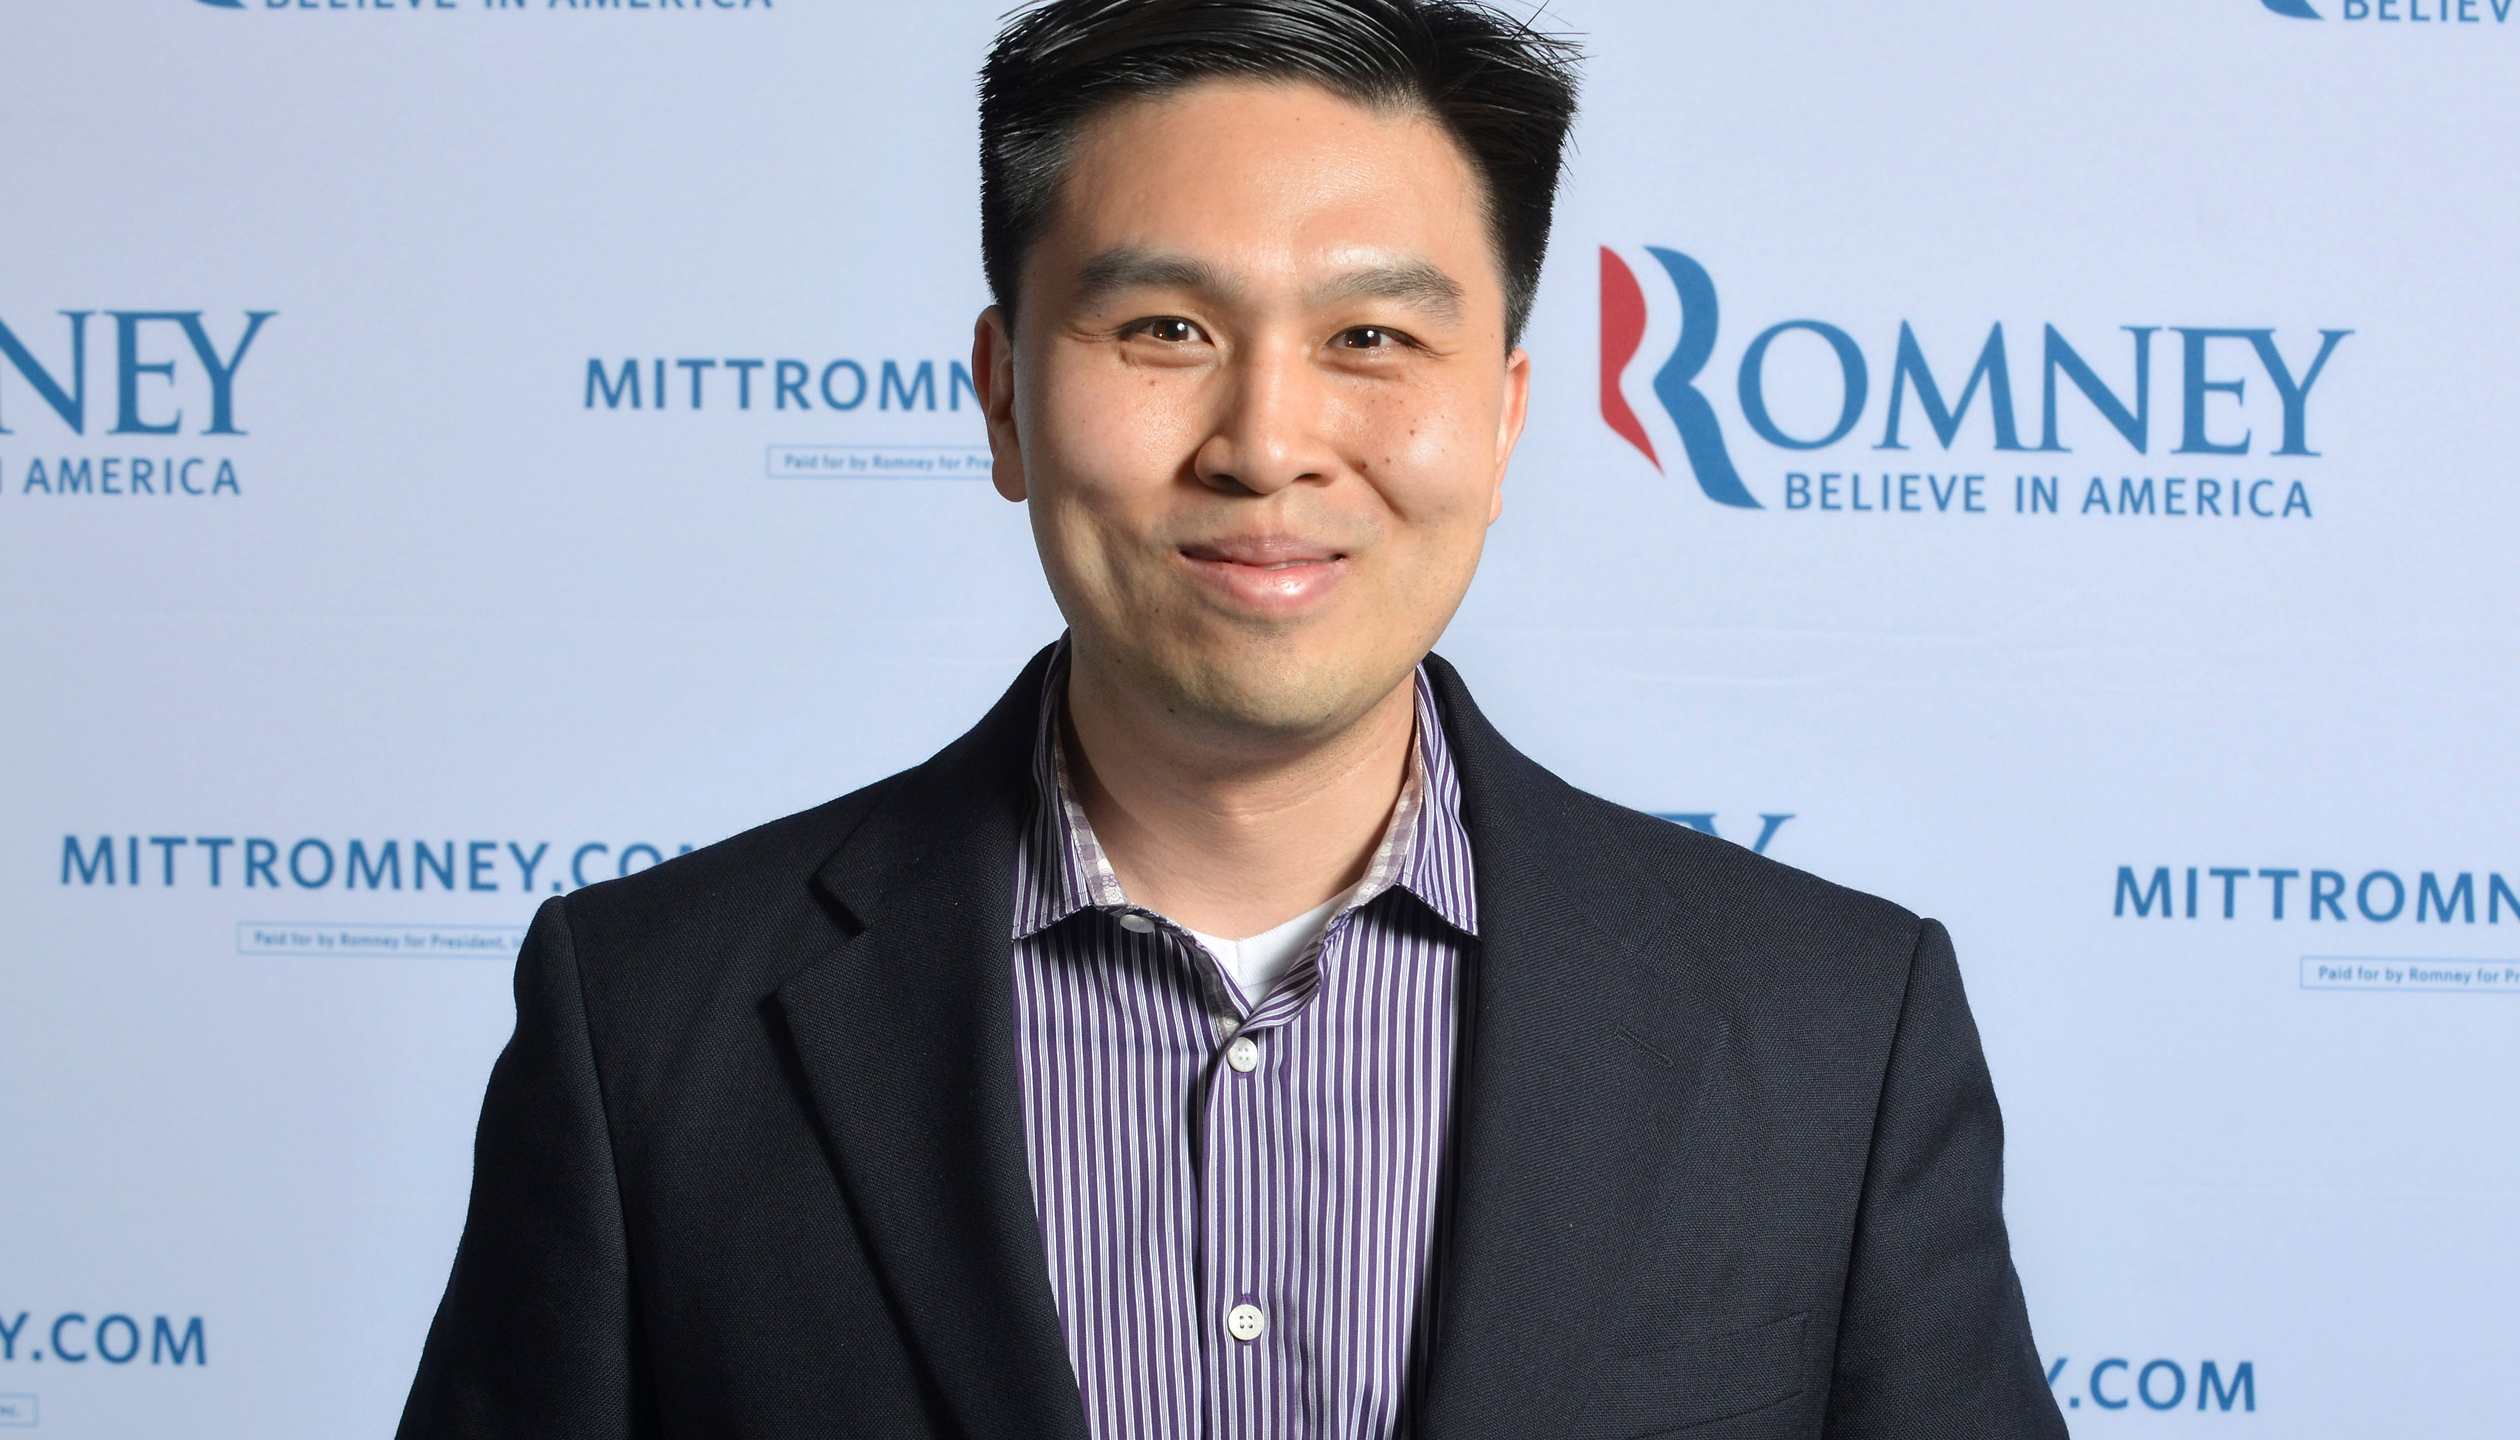 In this June 1, 2012 file photo, then-campaign policy director Lanhee Chen is photographed at the Mitt Romney campaign's Boston headquarters. Chen, a longtime Republican policy adviser, announced Tuesday, July 6, 2021, he's running to succeed Betty Yee, a Democrat who cannot run again, as state controller. (AP Photo/Josh Reynolds, File)